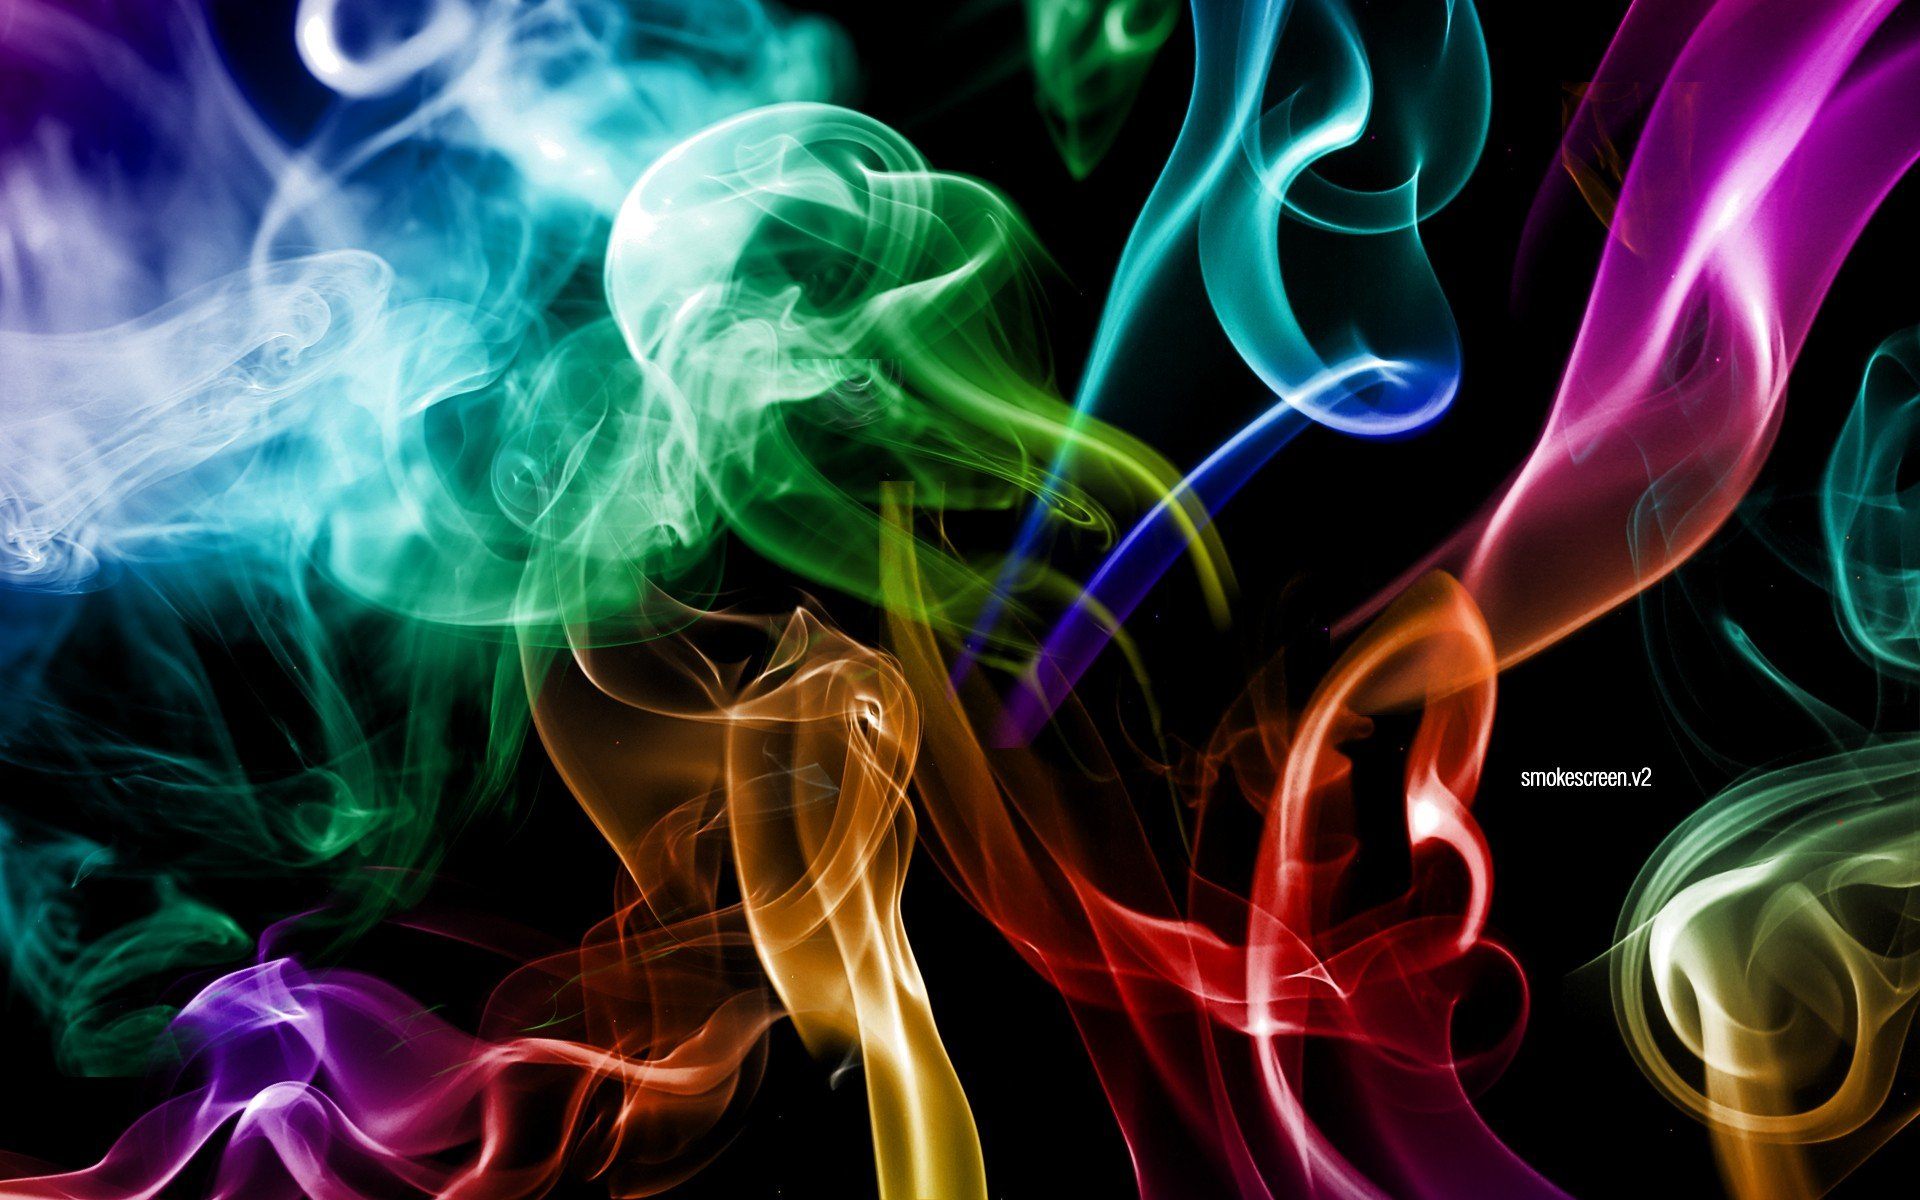 Smoke Colors Wallpapers HD Wallpapers 1920x1200